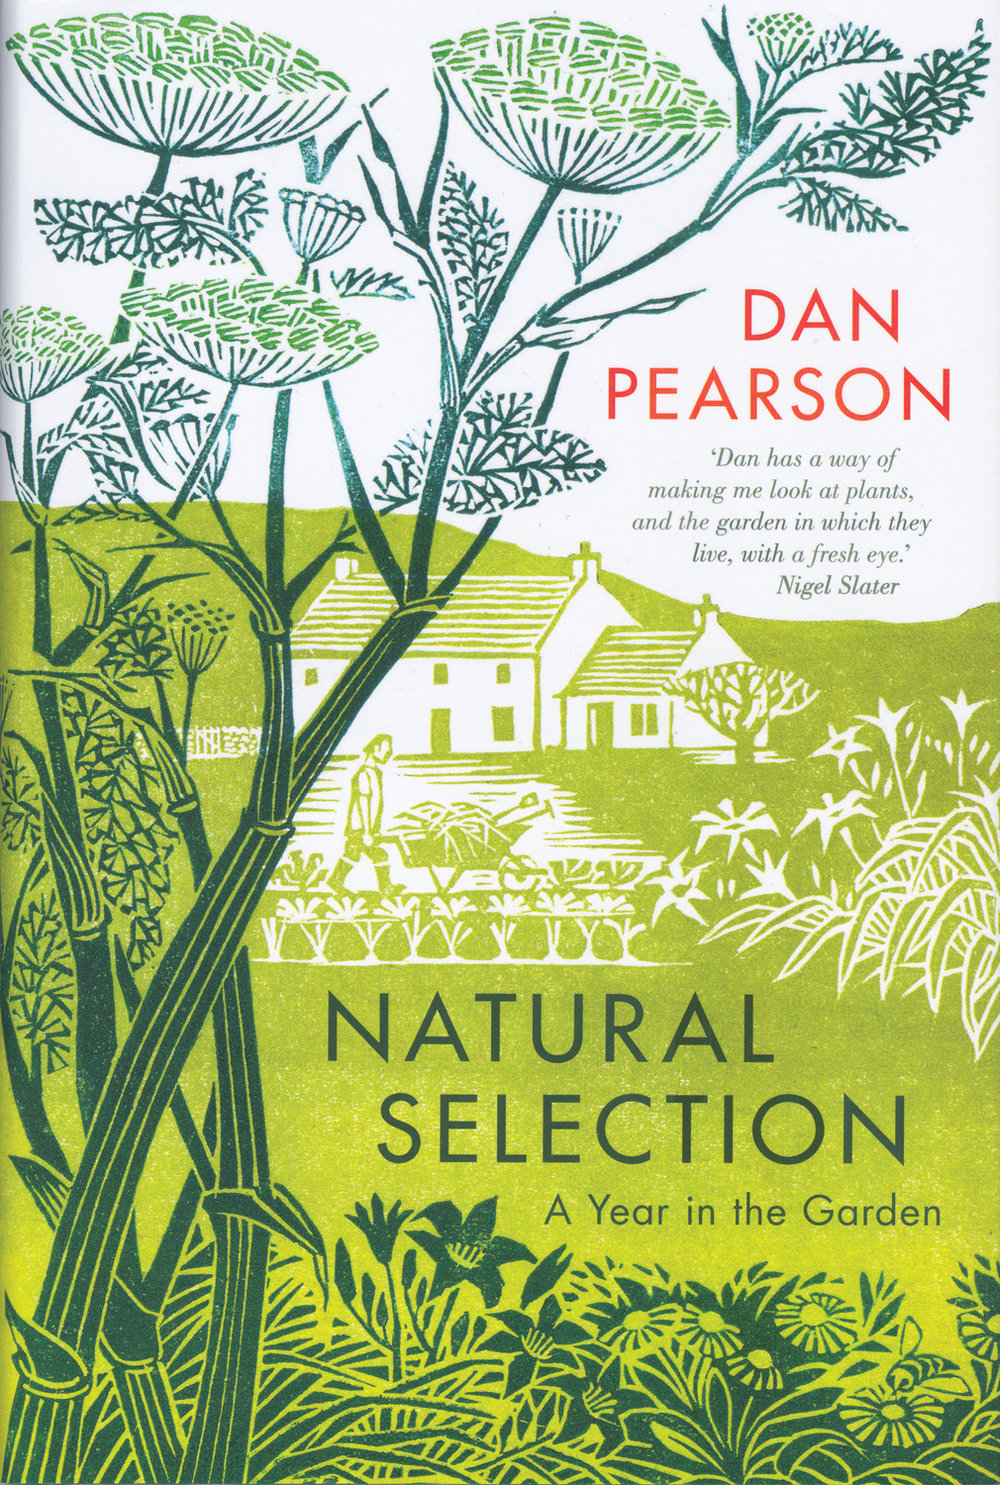 PICTURED: Natural Selection: A Year in the Garden by Dan Pearson, Faber & Faber, $42.95